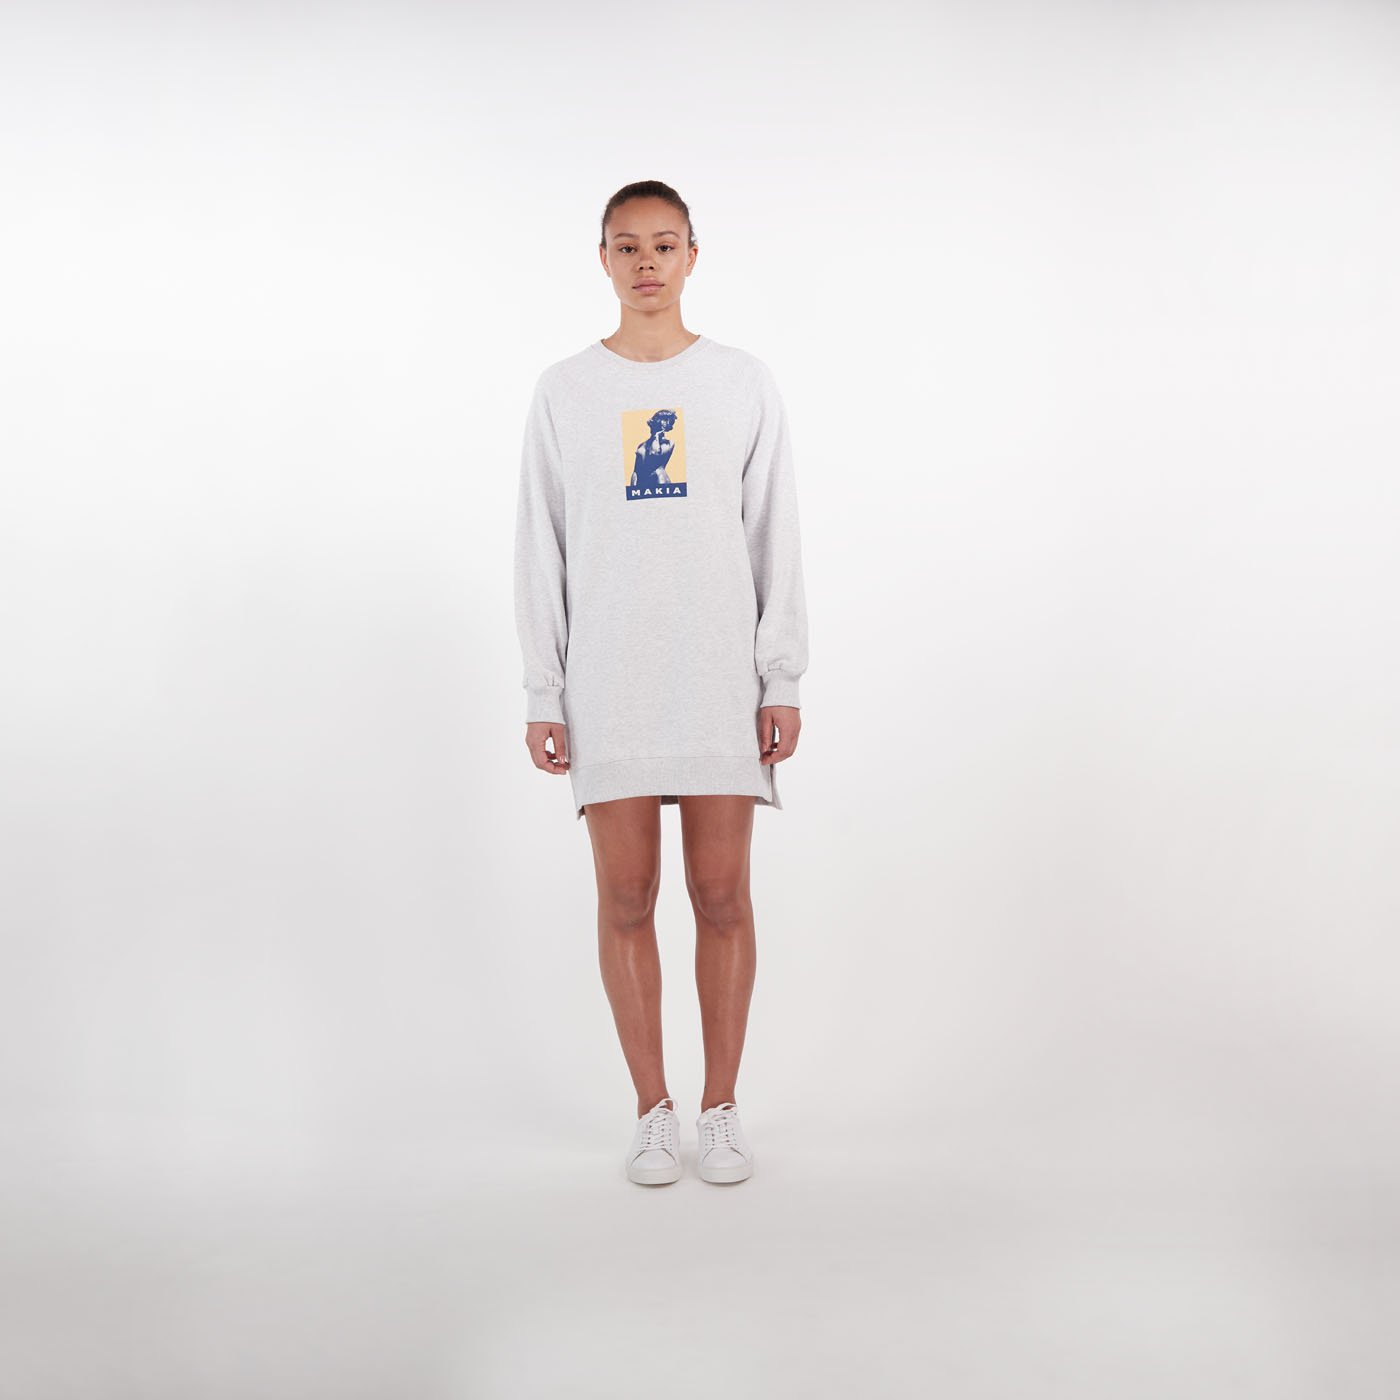 Makia, Manta long sweatshirt - Alava Shop